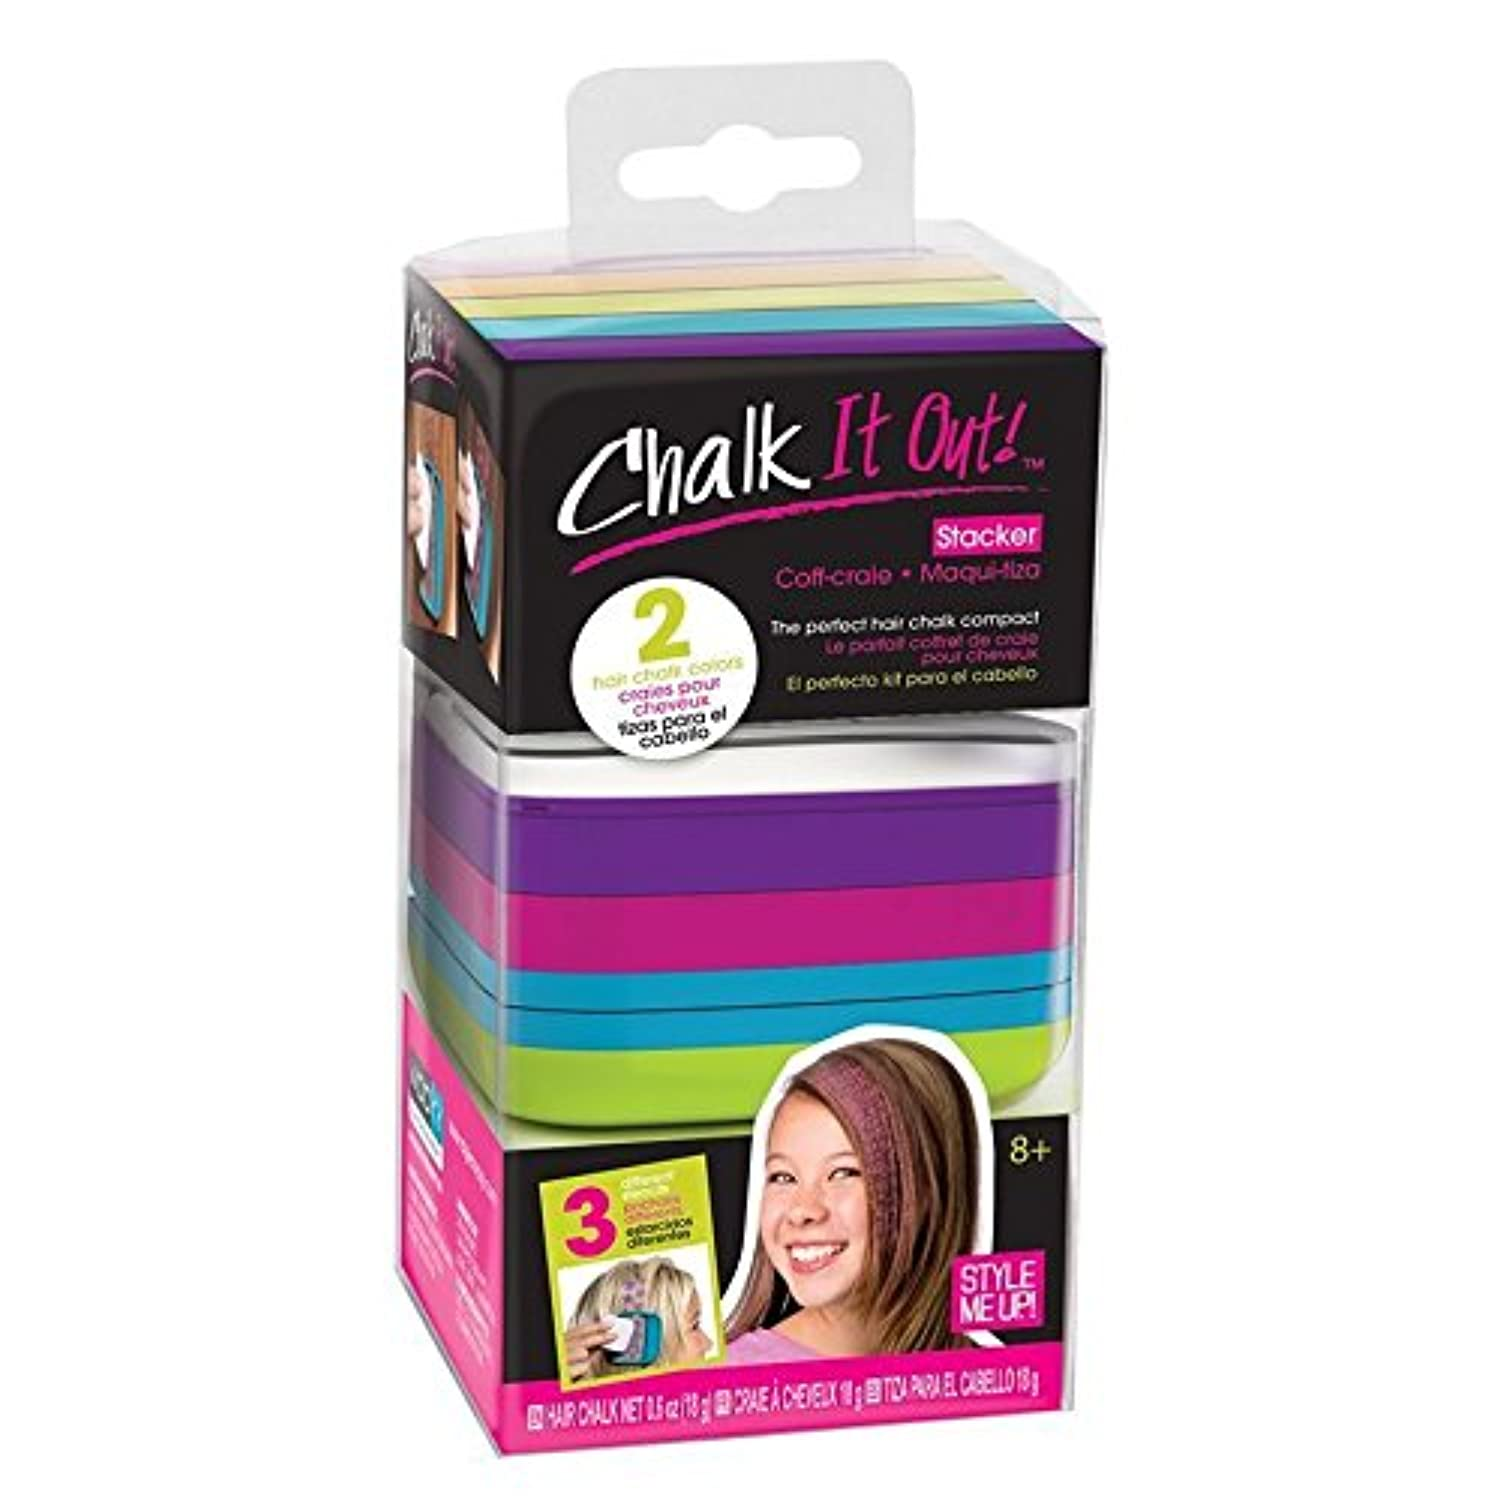 Style Me Up Chalk It Out Stacker